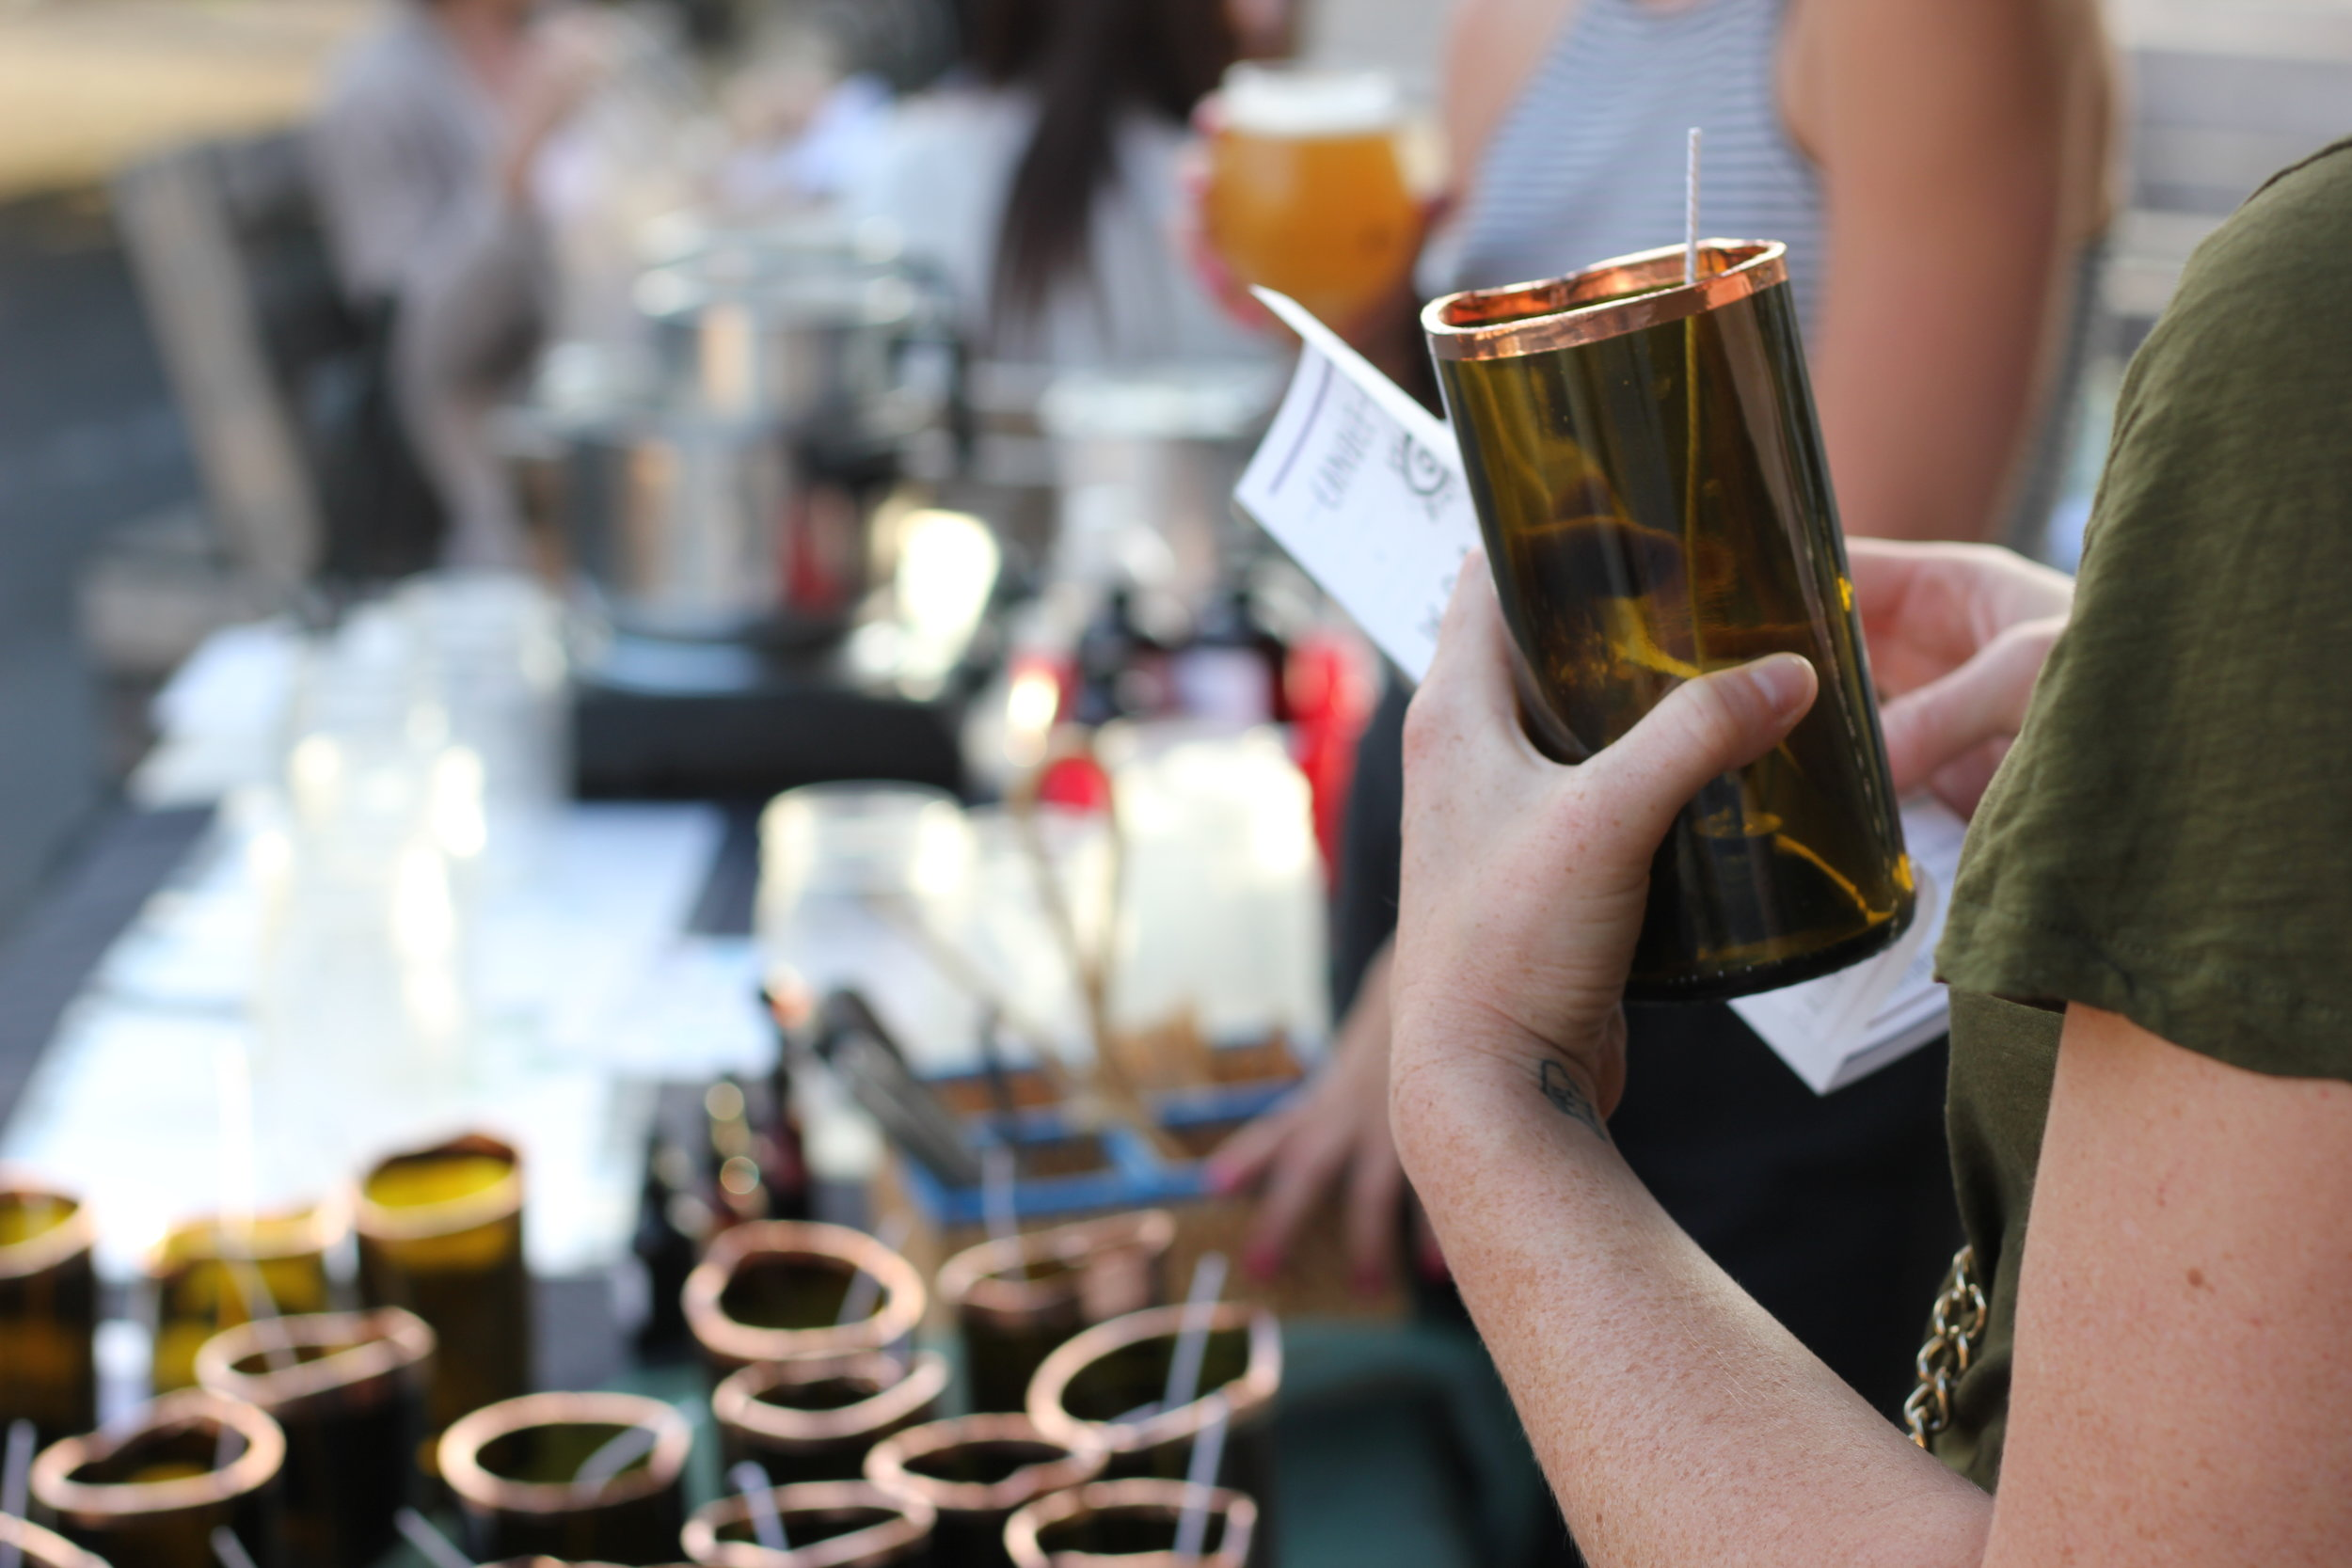 Join us at a Workshop! - Explore scent, color, symbols and intent to curate your very own candle.